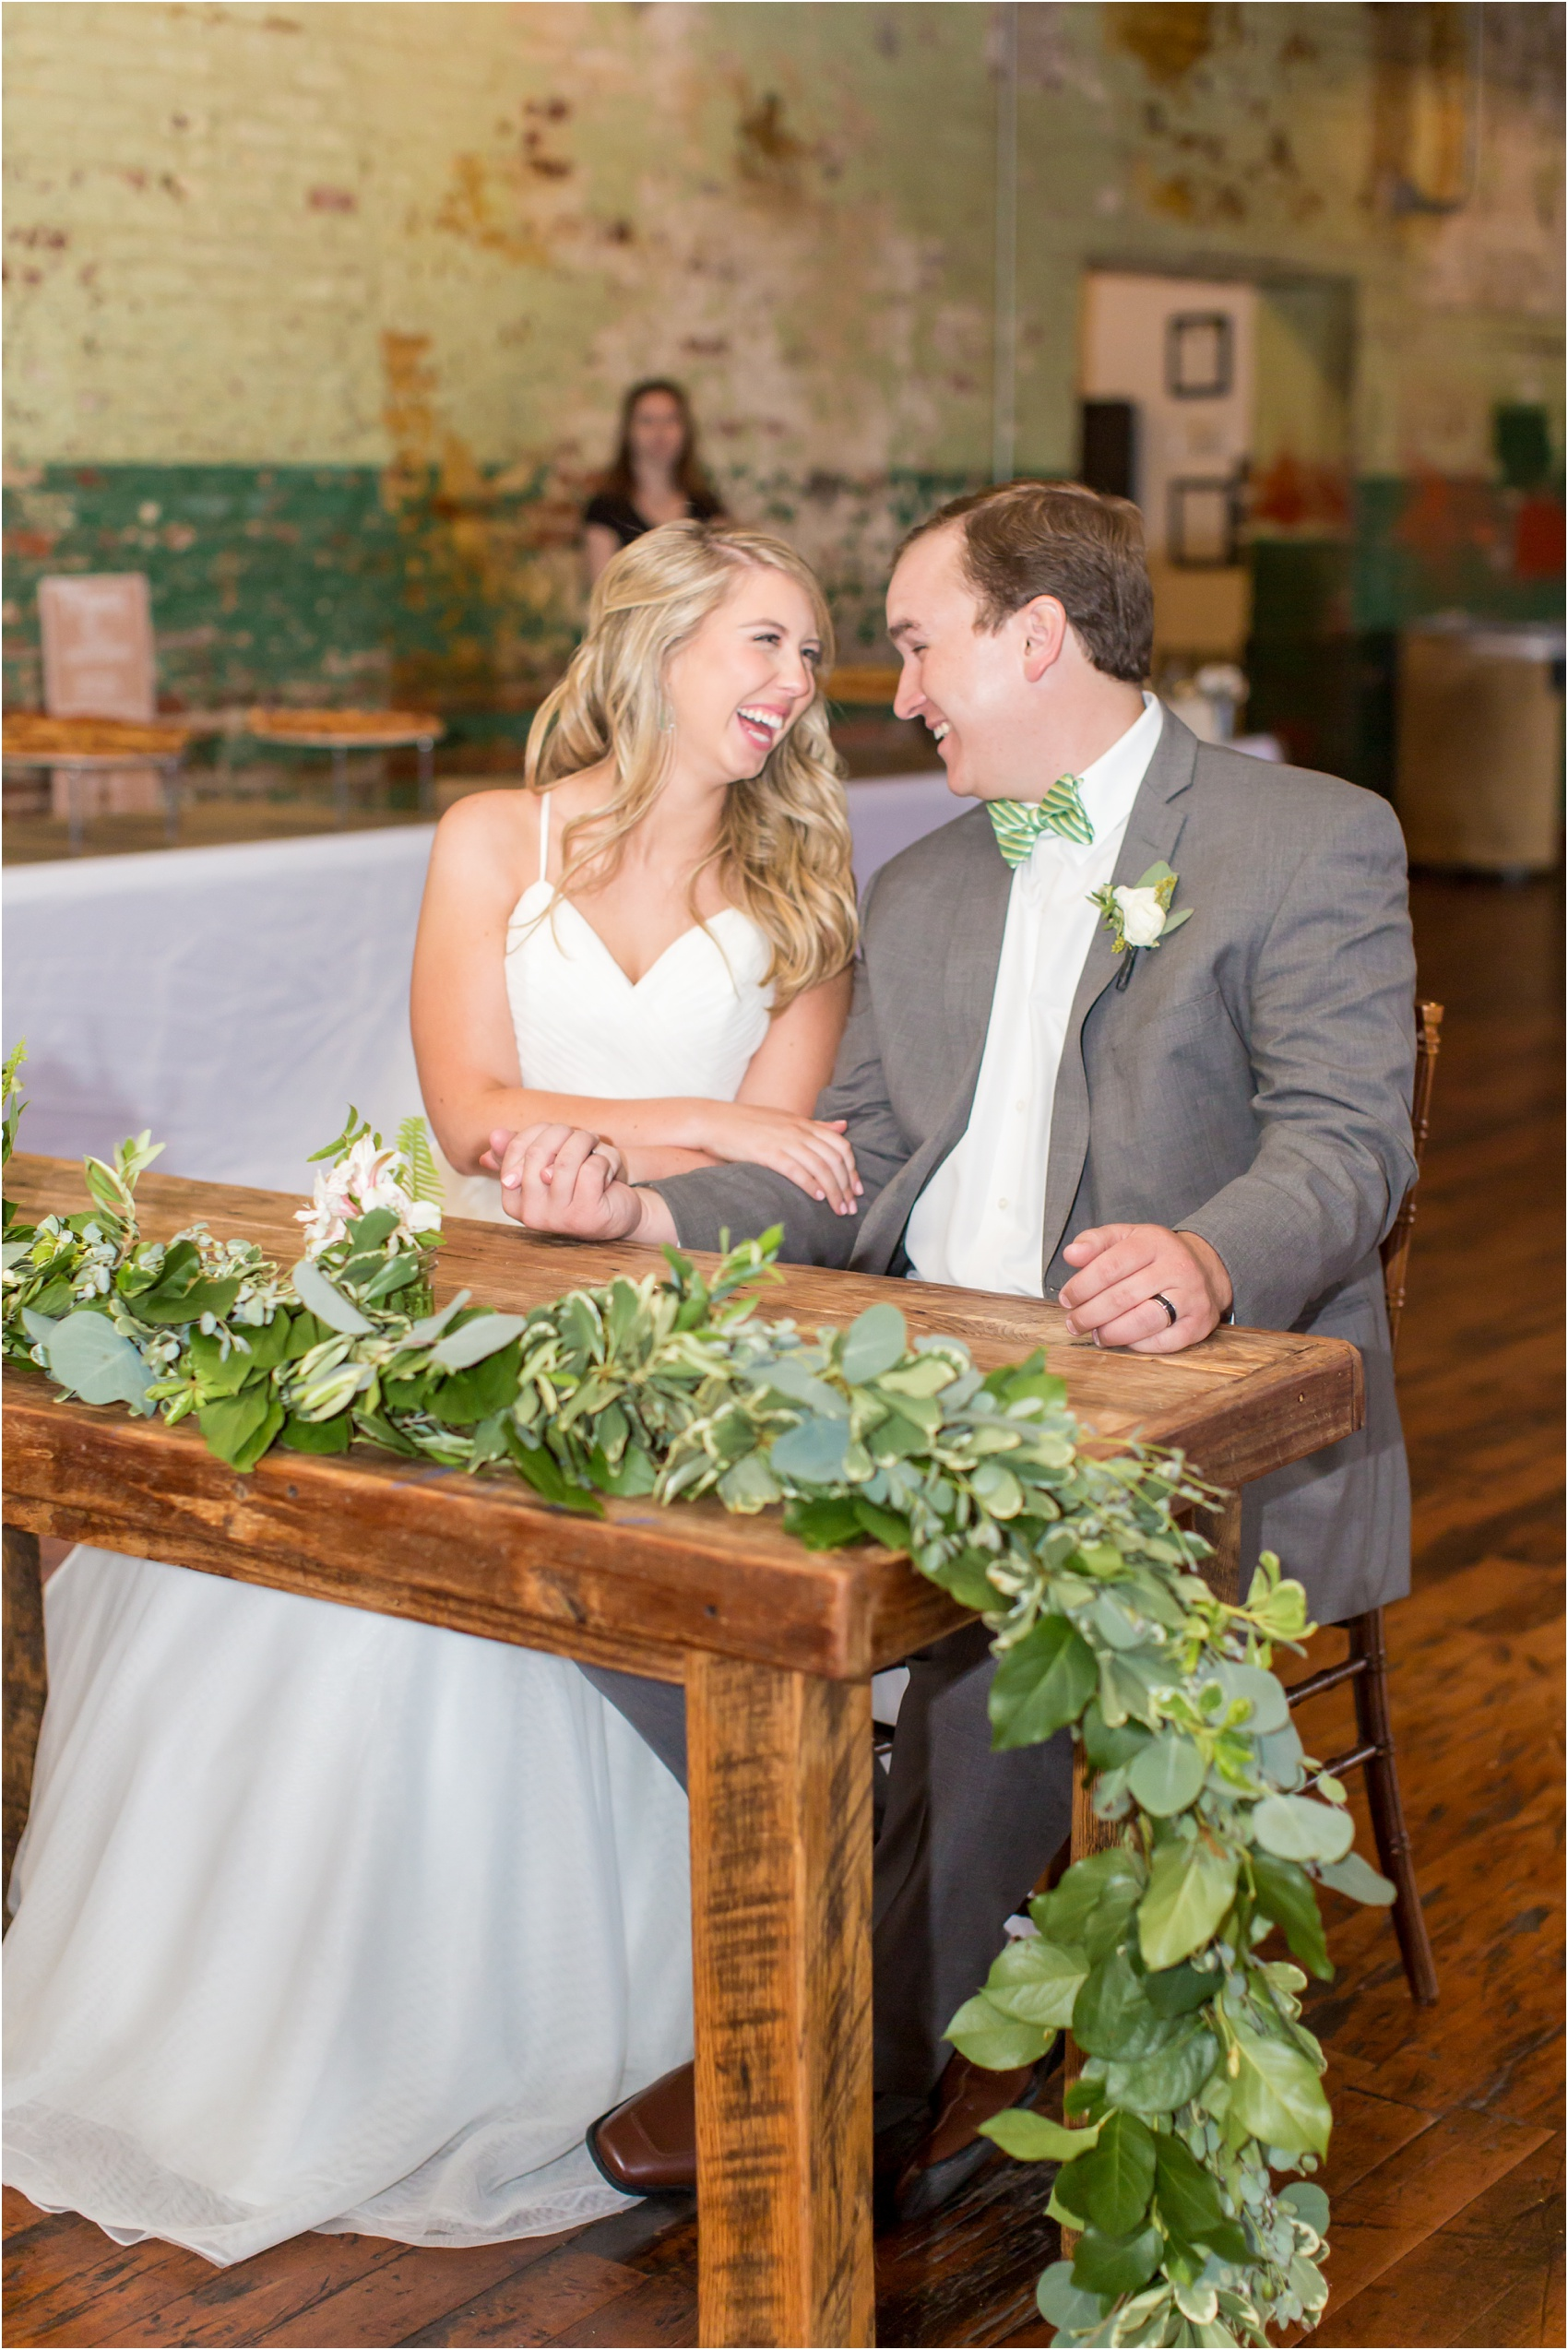 Savannah Eve Photography- Gunter Wedding- Blog-63.jpg